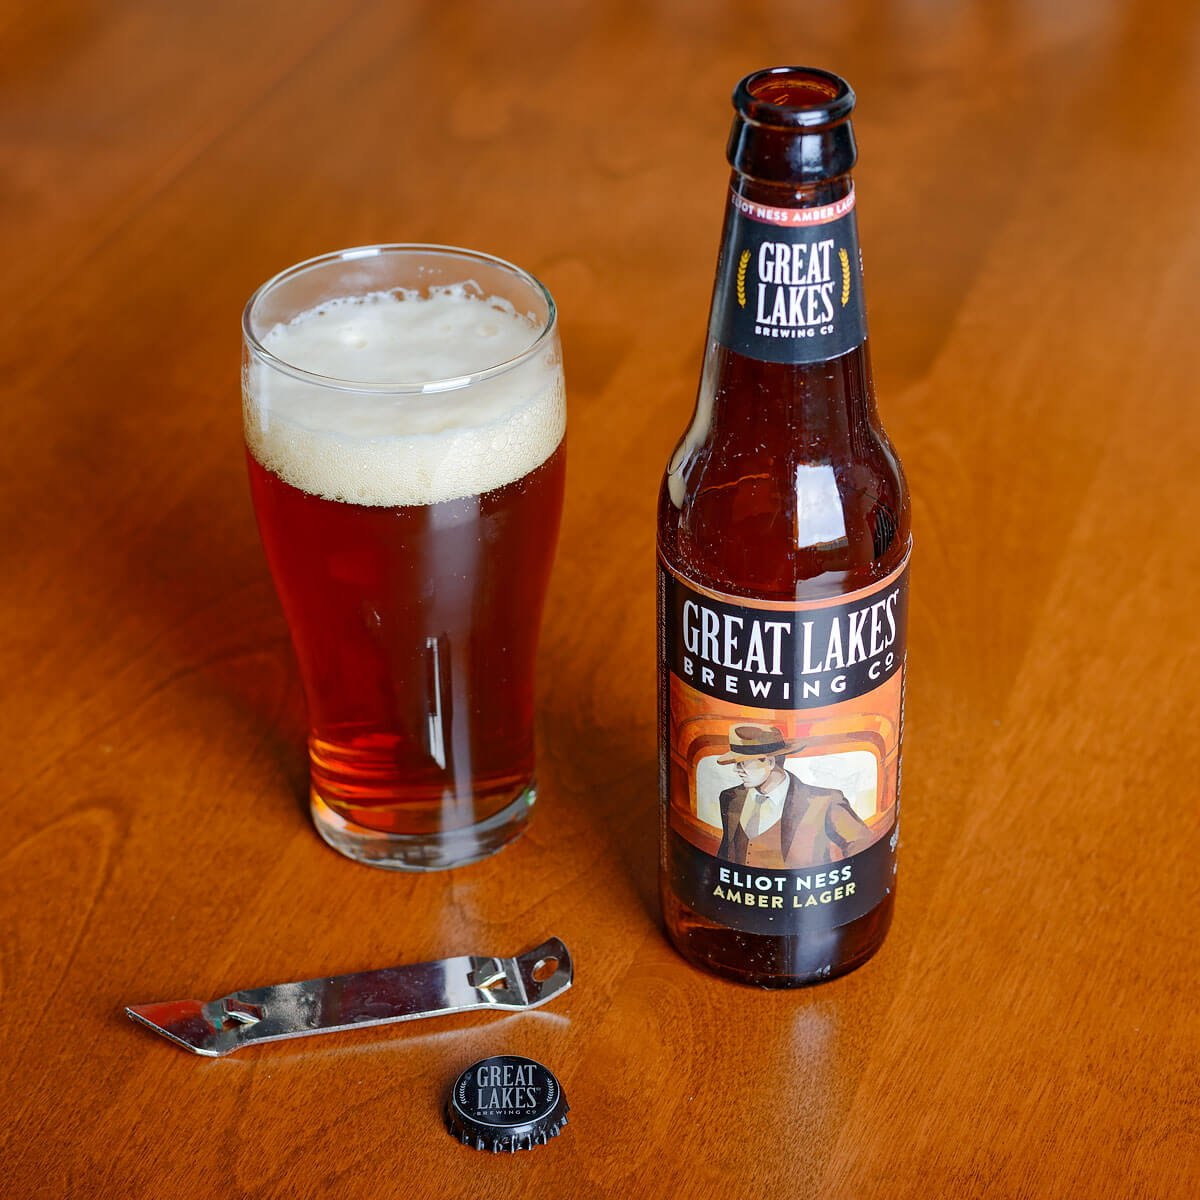 Eliot Ness Amber Lager, a Vienna Lager by Great Lakes Brewing Co.